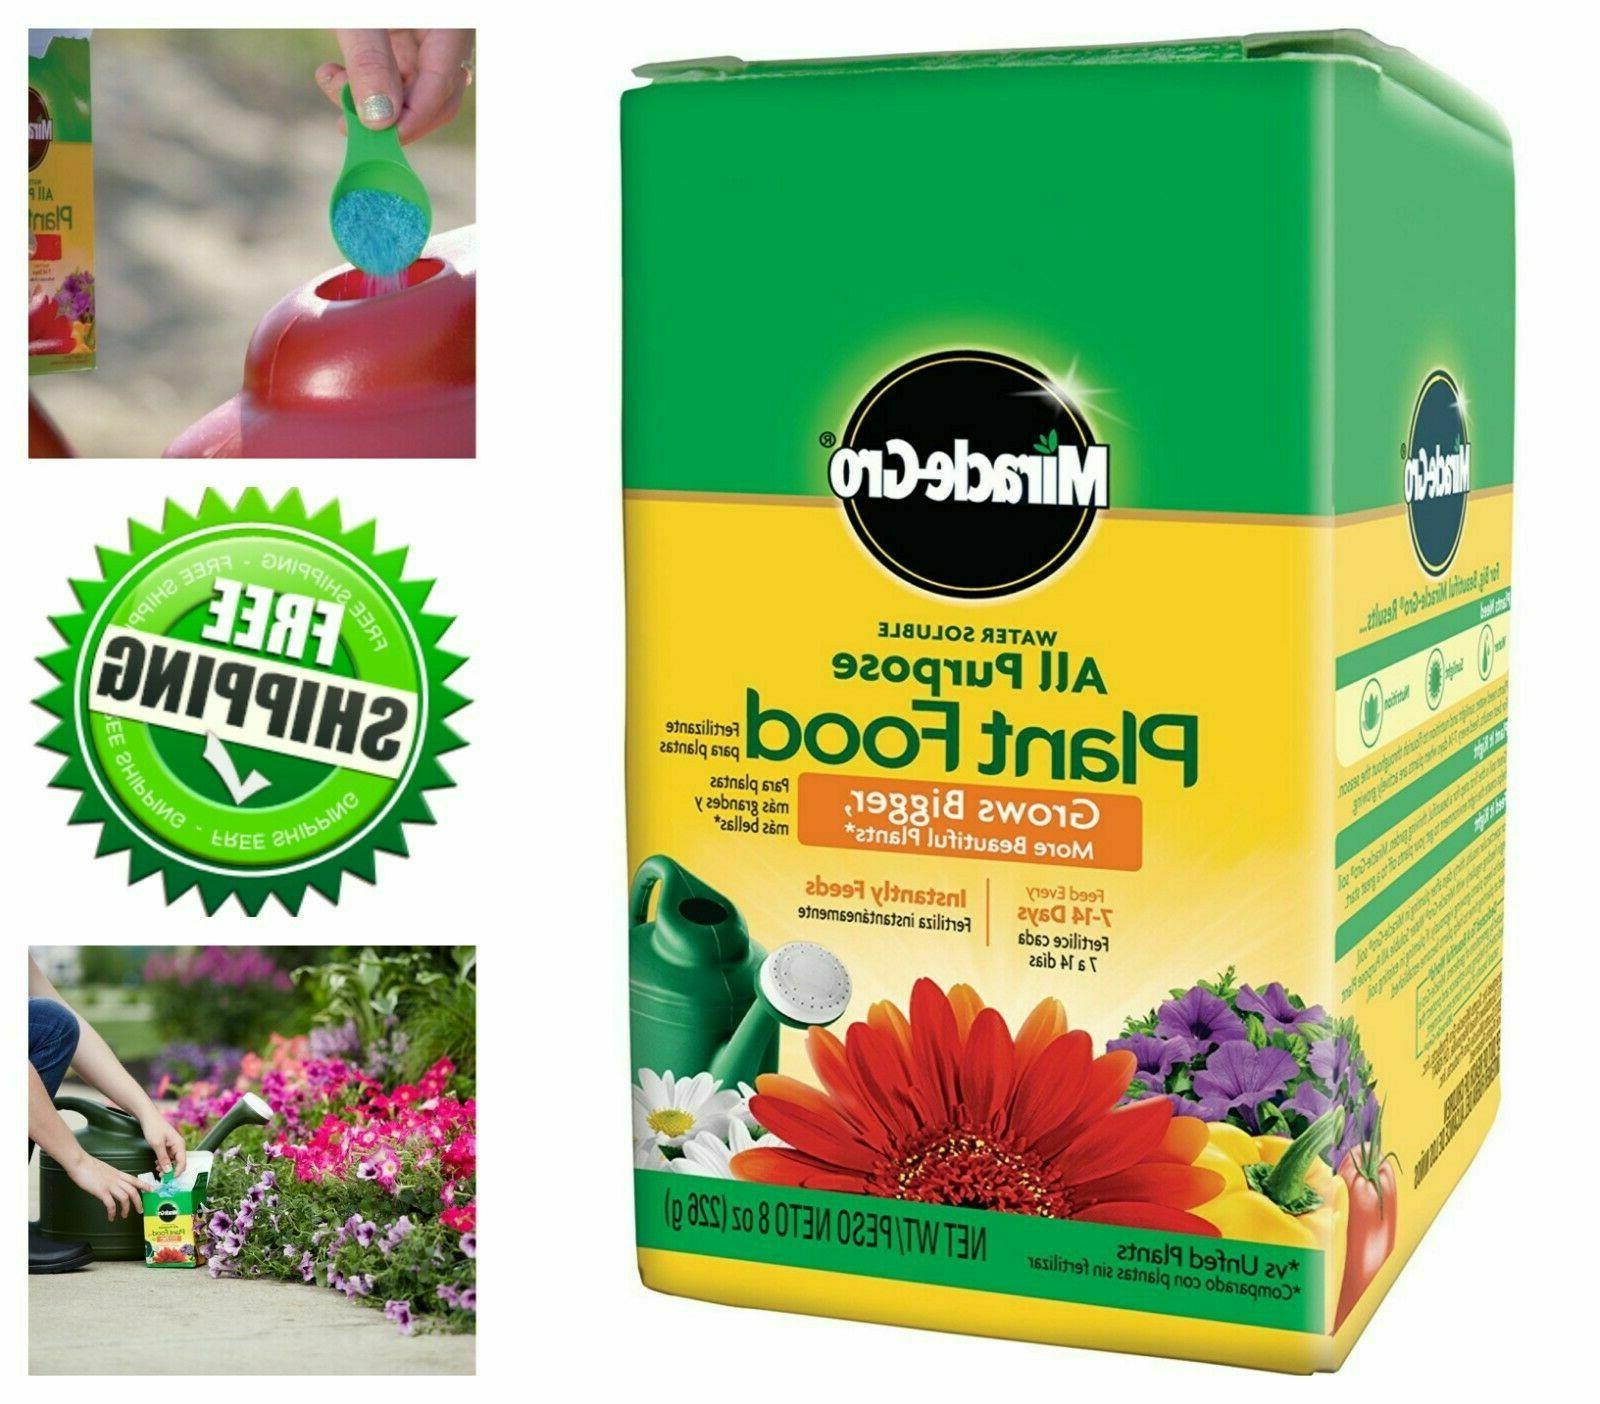 8 oz water soluble all purpose plant